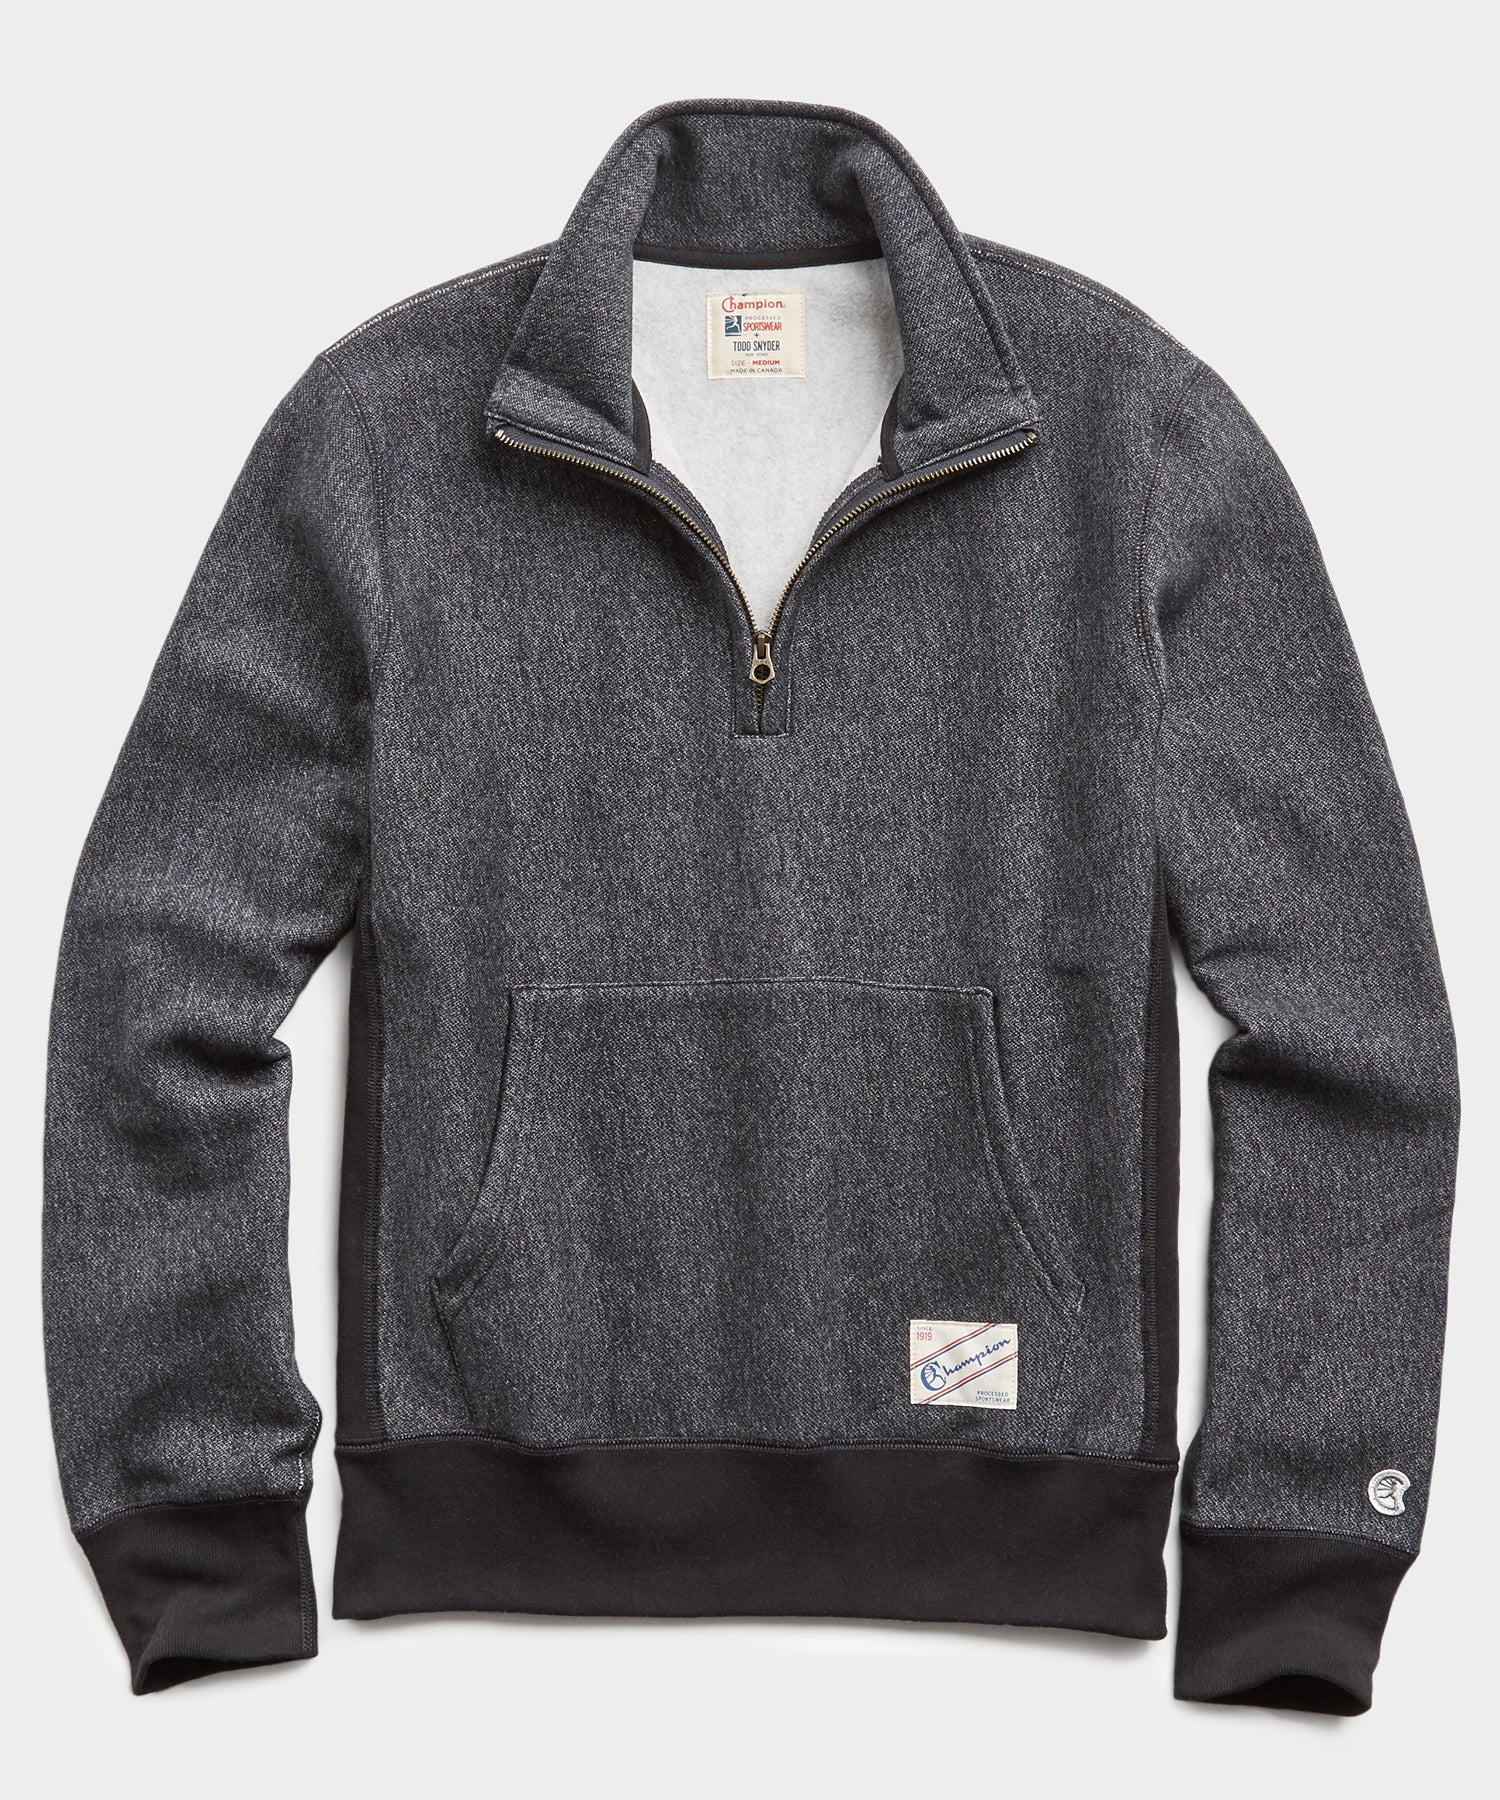 Heavyweight Quarter Zip Sweatshirt in Black Pepper Charcoal